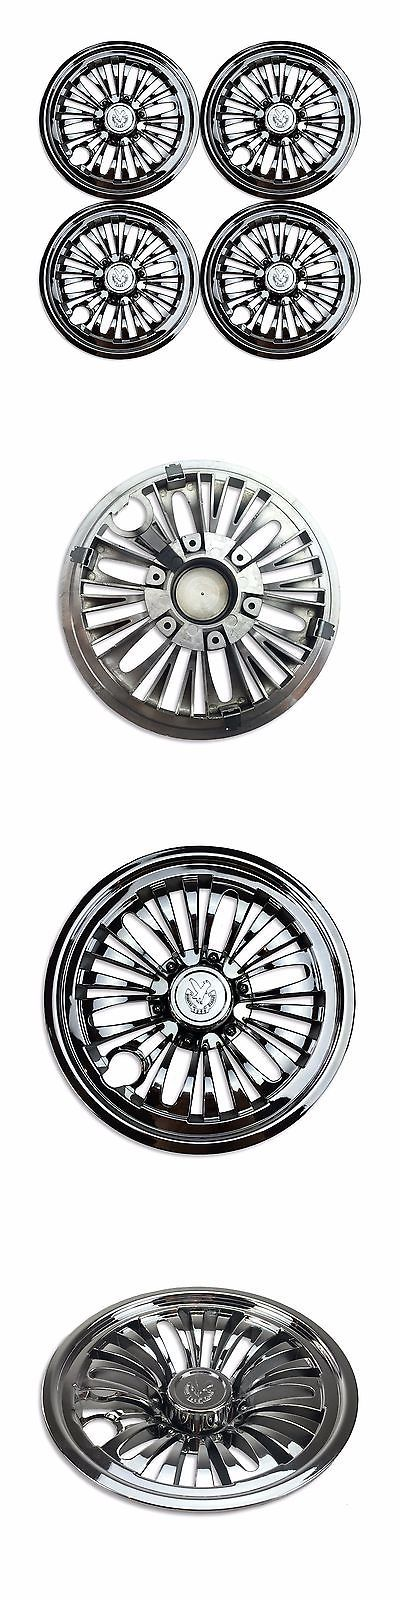 Push-Pull Golf Carts 75207: (4) One Set Of 8 Golf Cart Chrome Wheel Covers Hub Caps - Club Car/Ezgo/Yamaha BUY IT NOW ONLY: $34.95